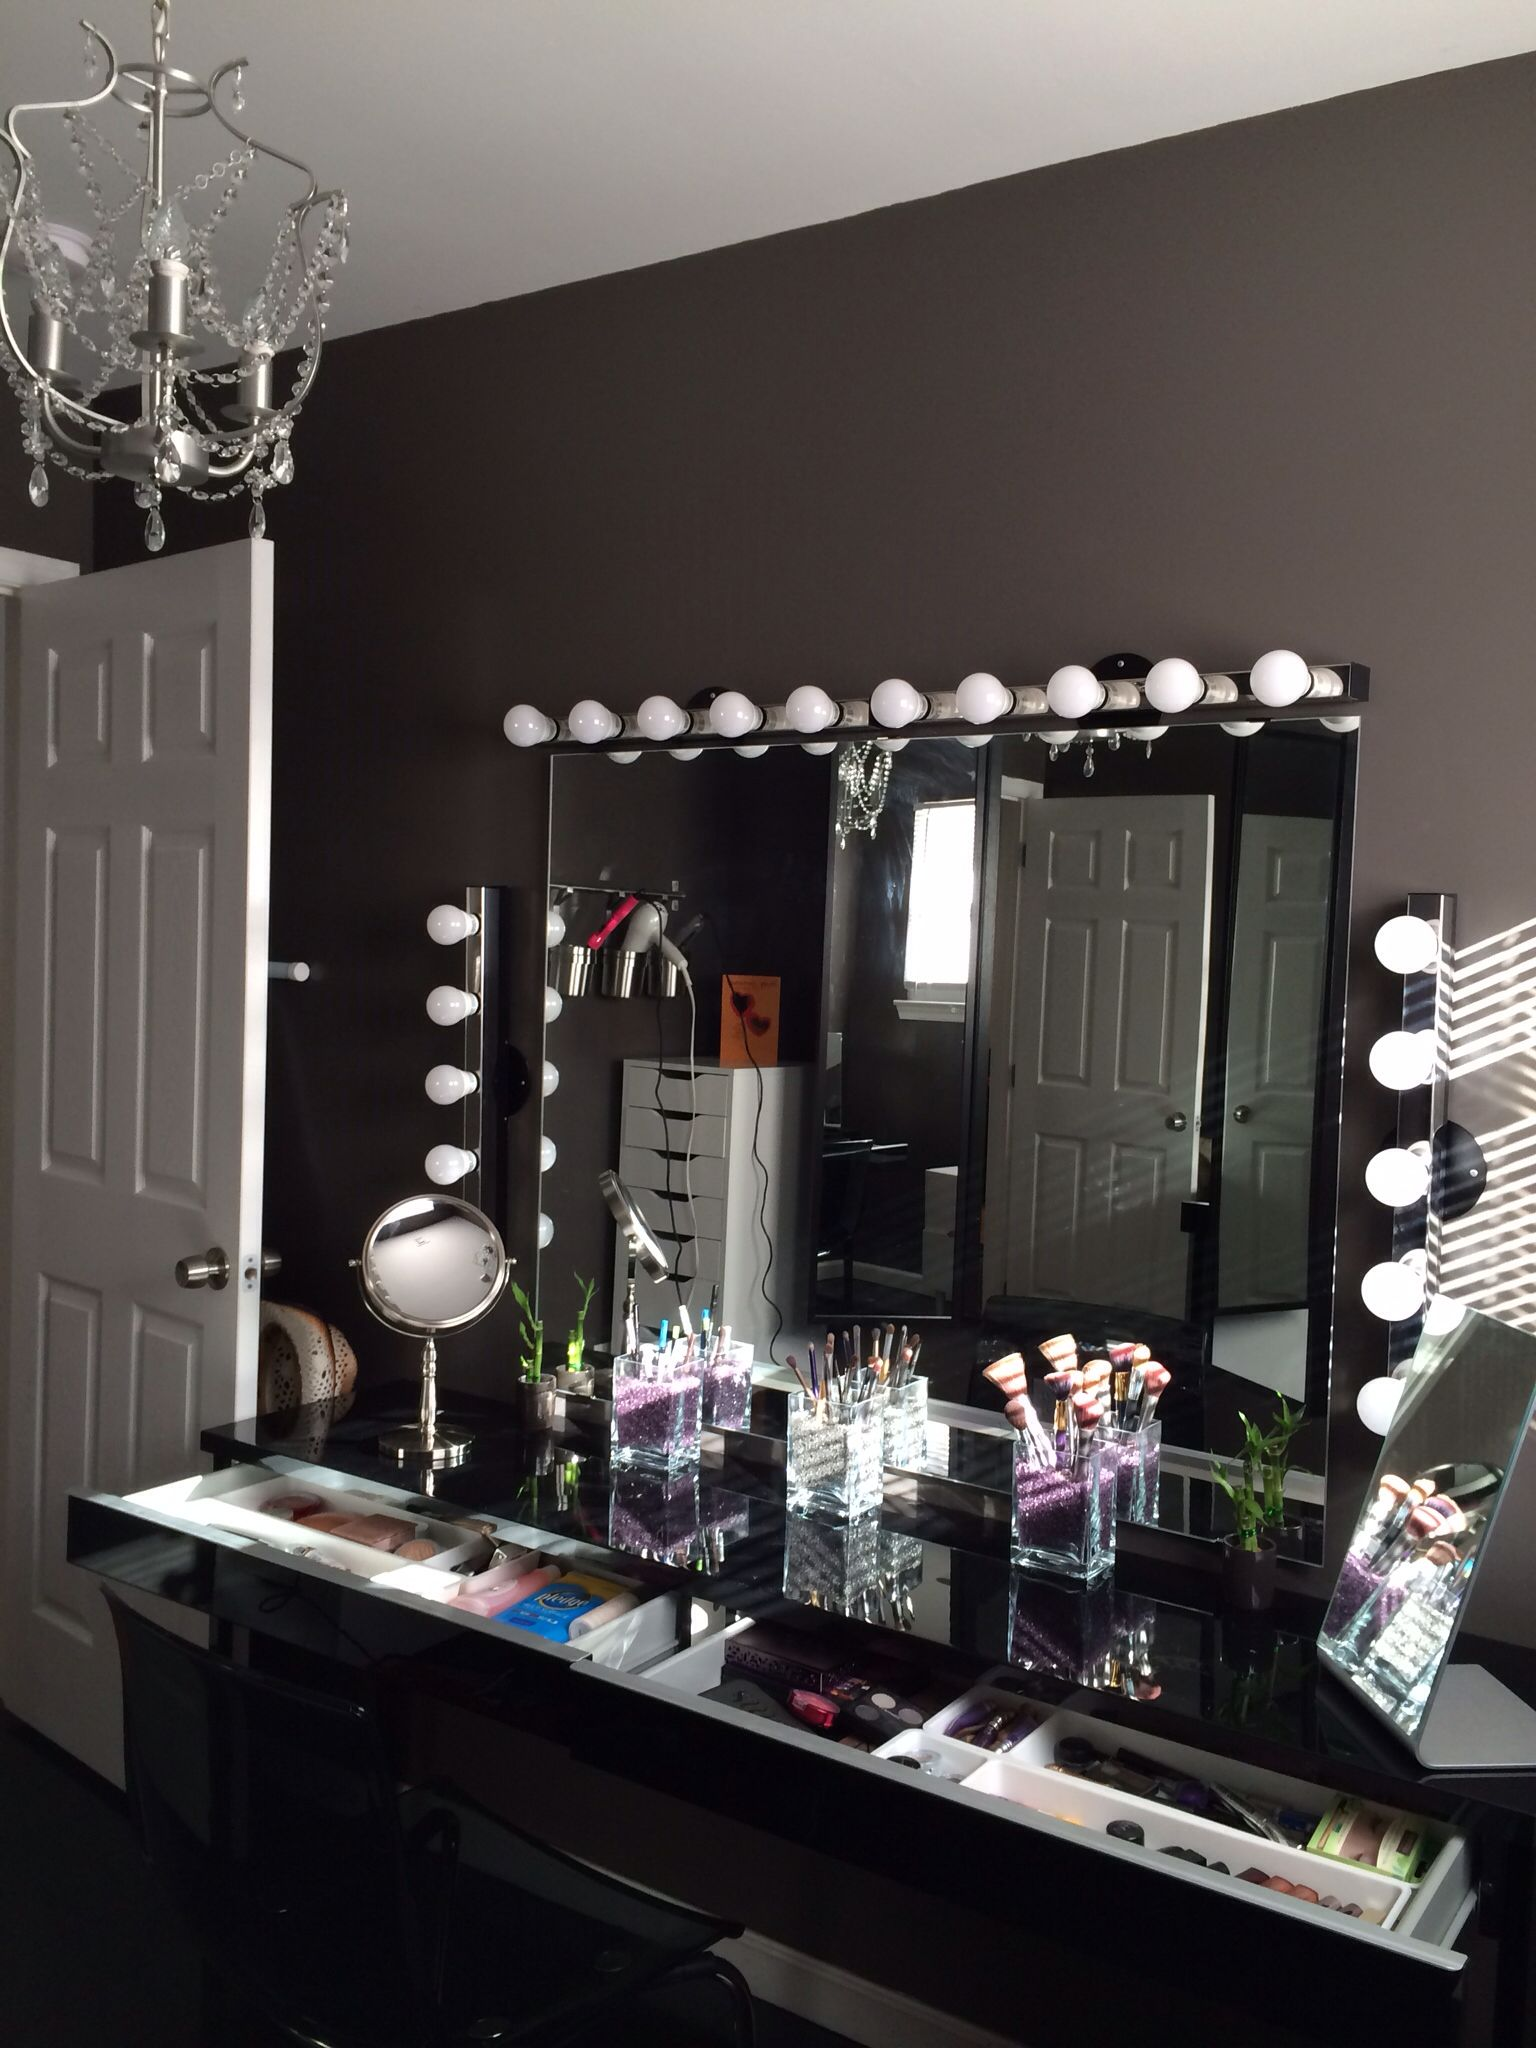 Bestrice acrylic makeup organizer jewelry display boxes bathroom click to download the elegant beauty room look book for amazing makeupvanity aloadofball Images